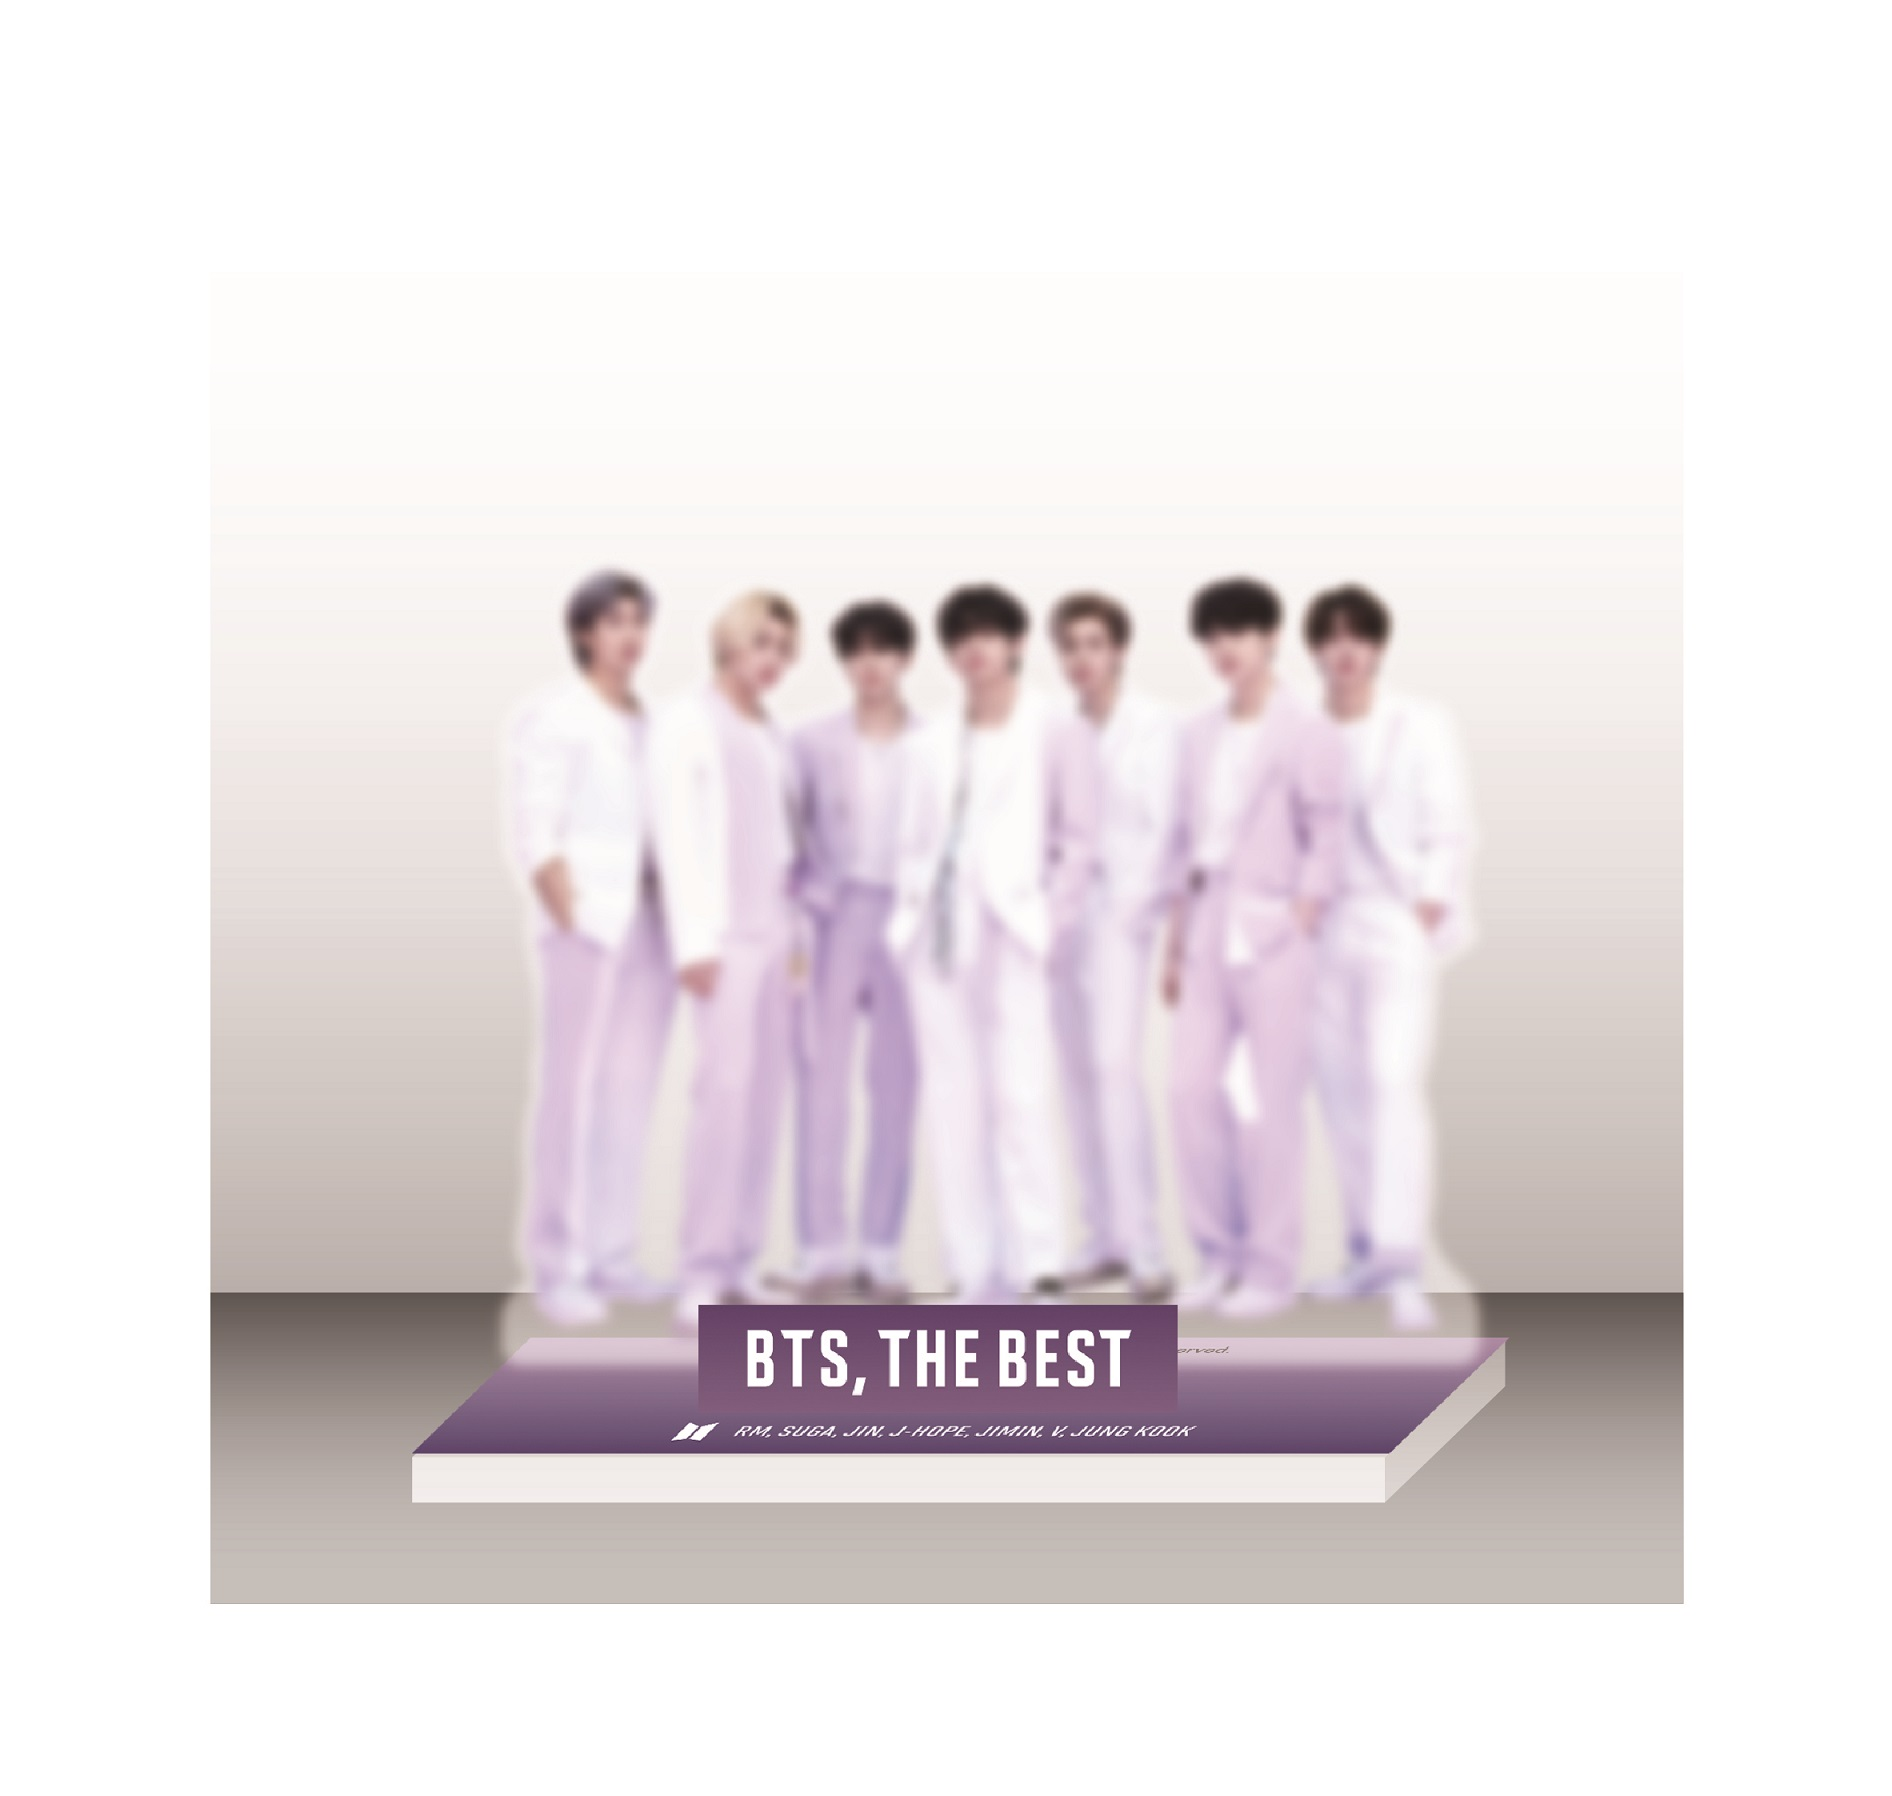 1_BTS_THE_BEST_Acryl_stand_1